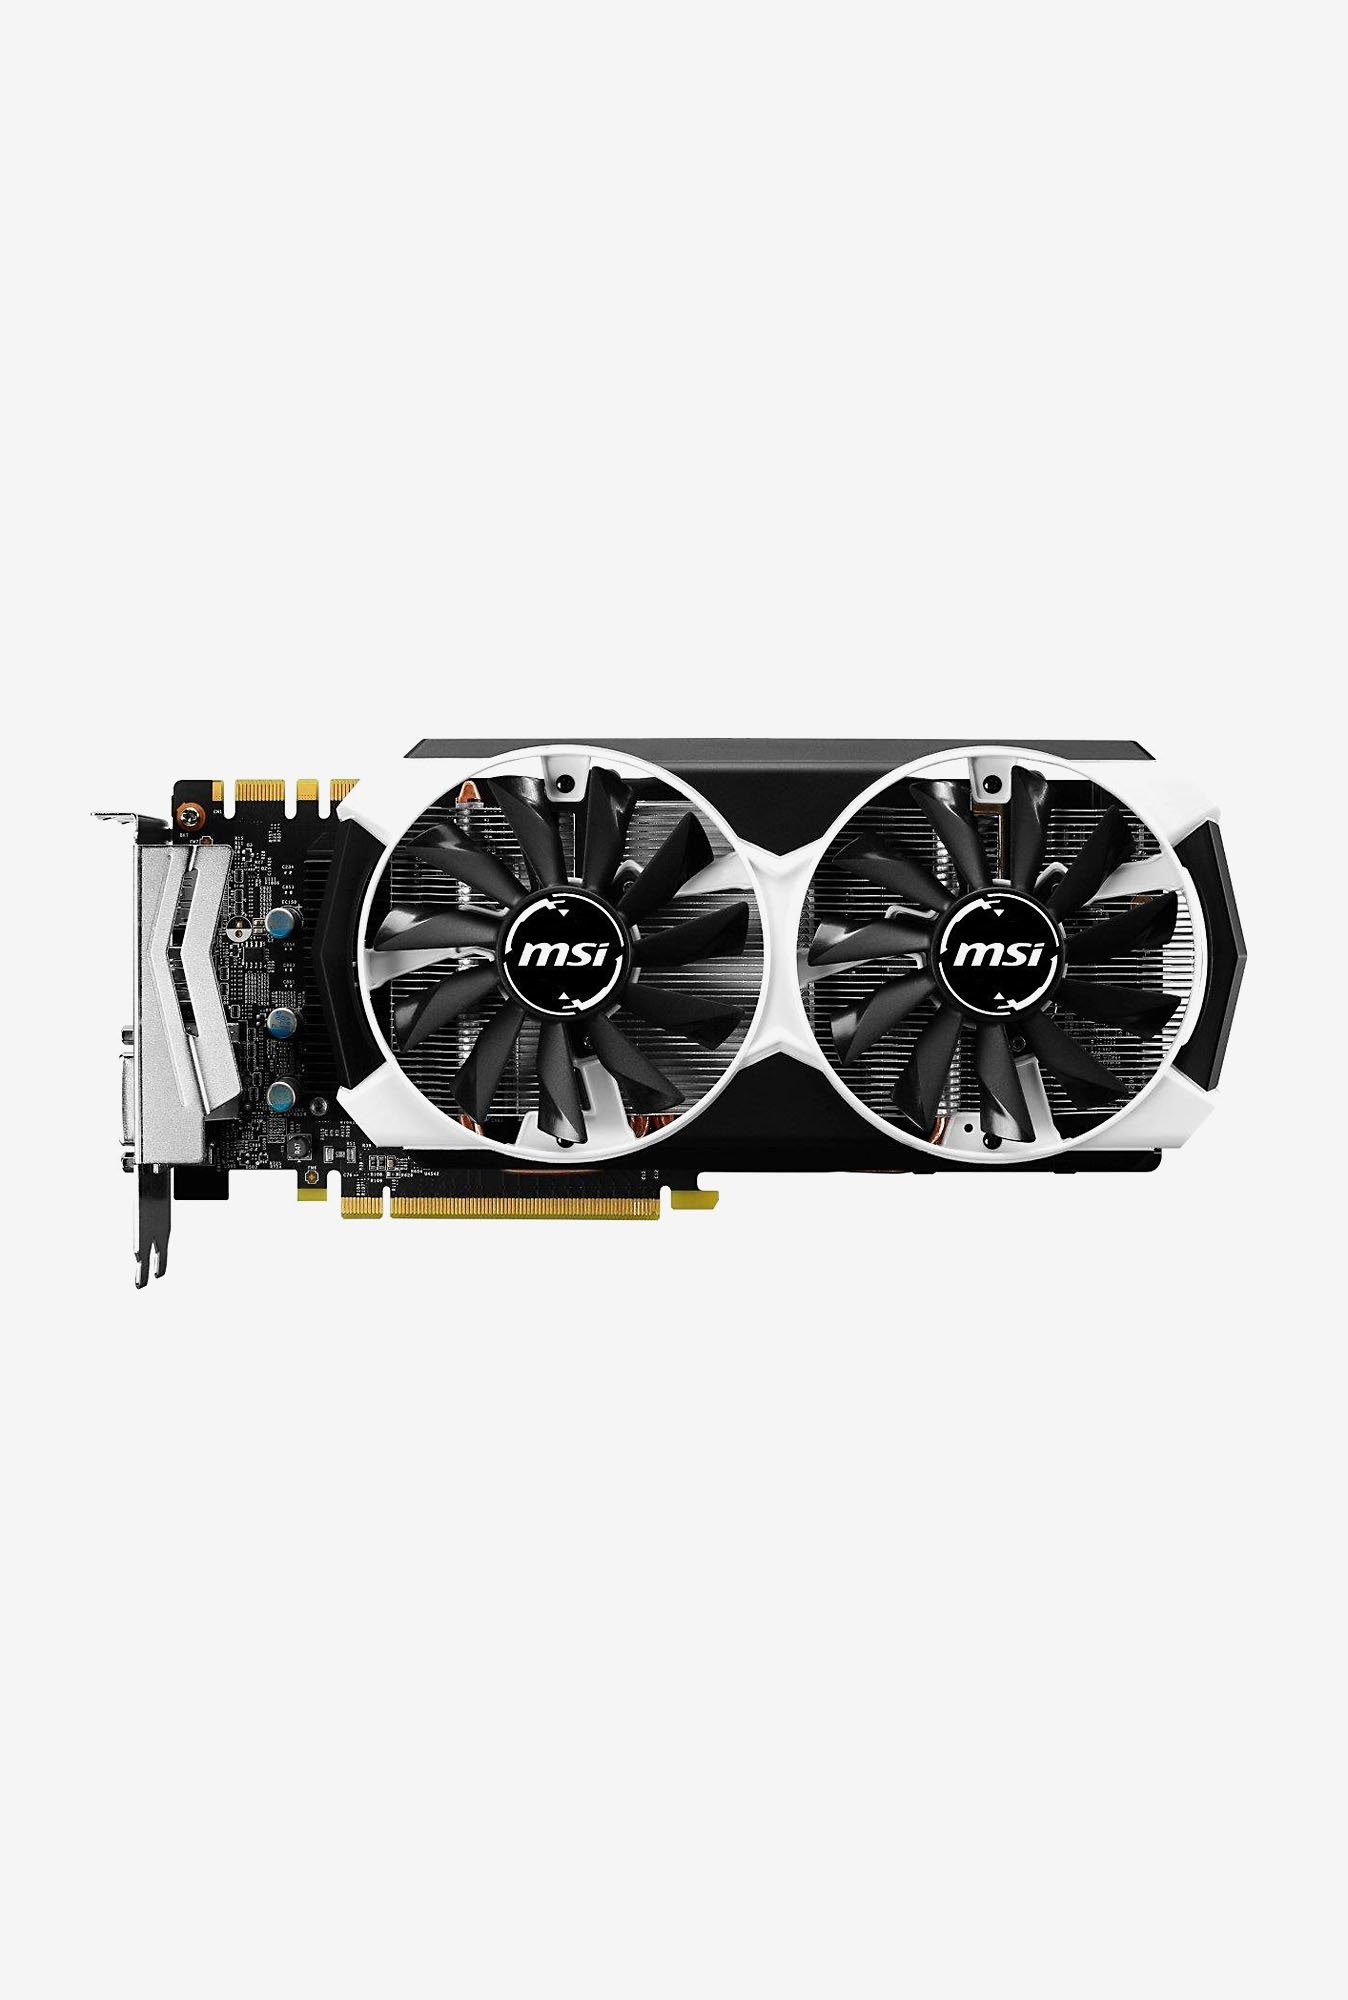 MSI GTX 970 4GD5T OCV1 Graphics Card Black